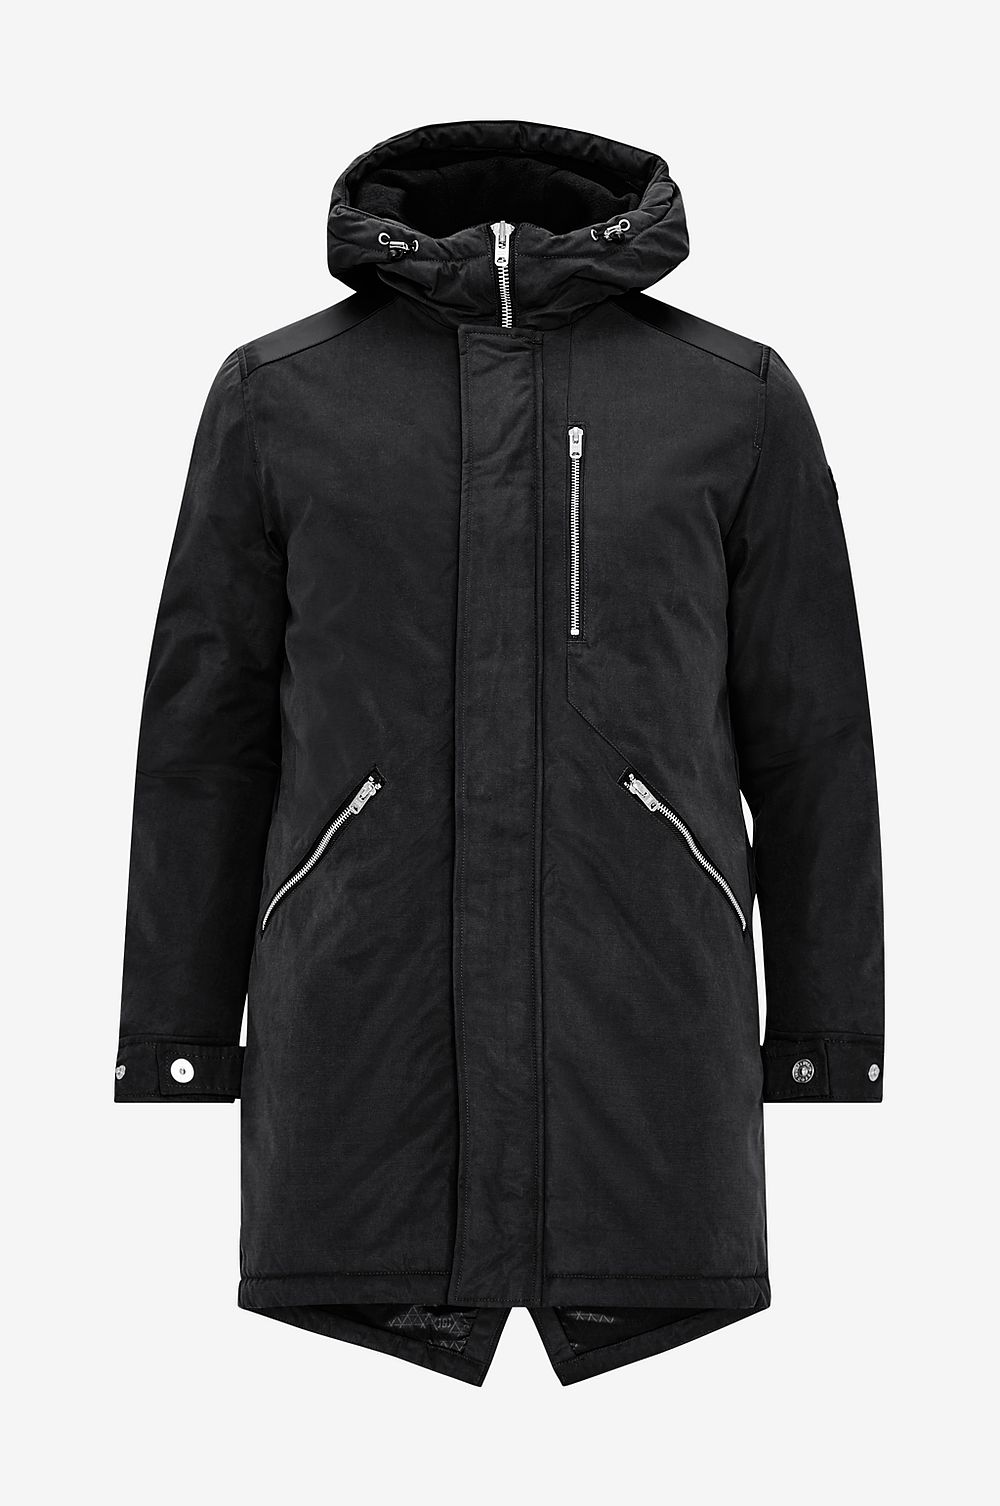 Jack & Jones Jacka jcoFigures Jacket - Svart - Herr